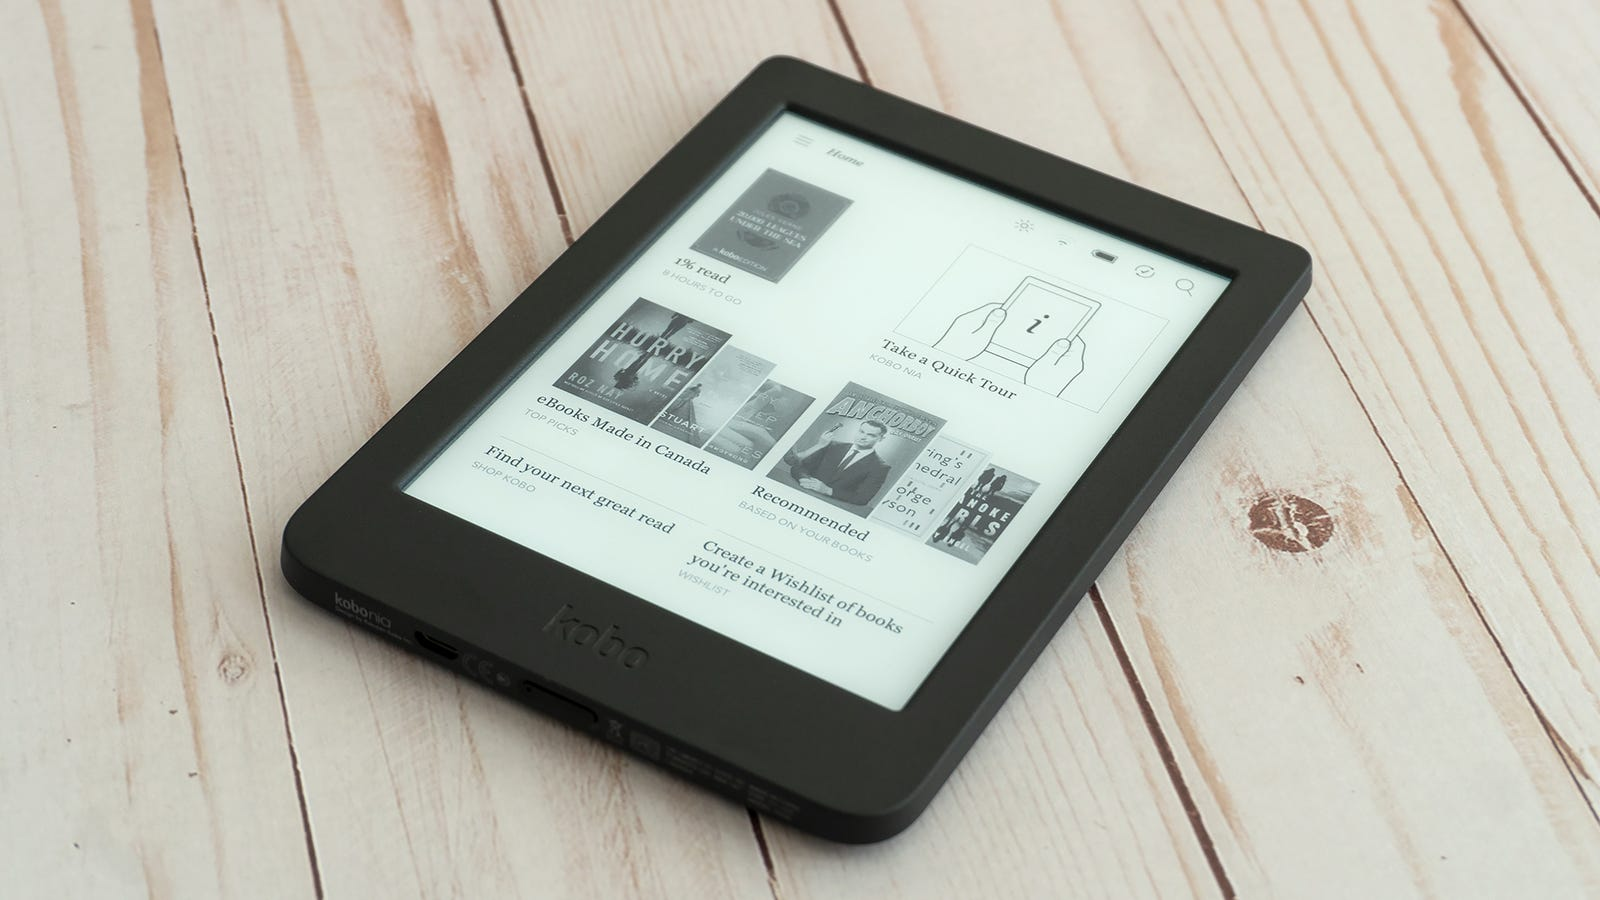 At $100 the Kobo Nia is a tough sell next to the $120 Kobo Clara HD, but as we get closer to the holidays, you can expect the Nia to be the first Kobo to be discounted.